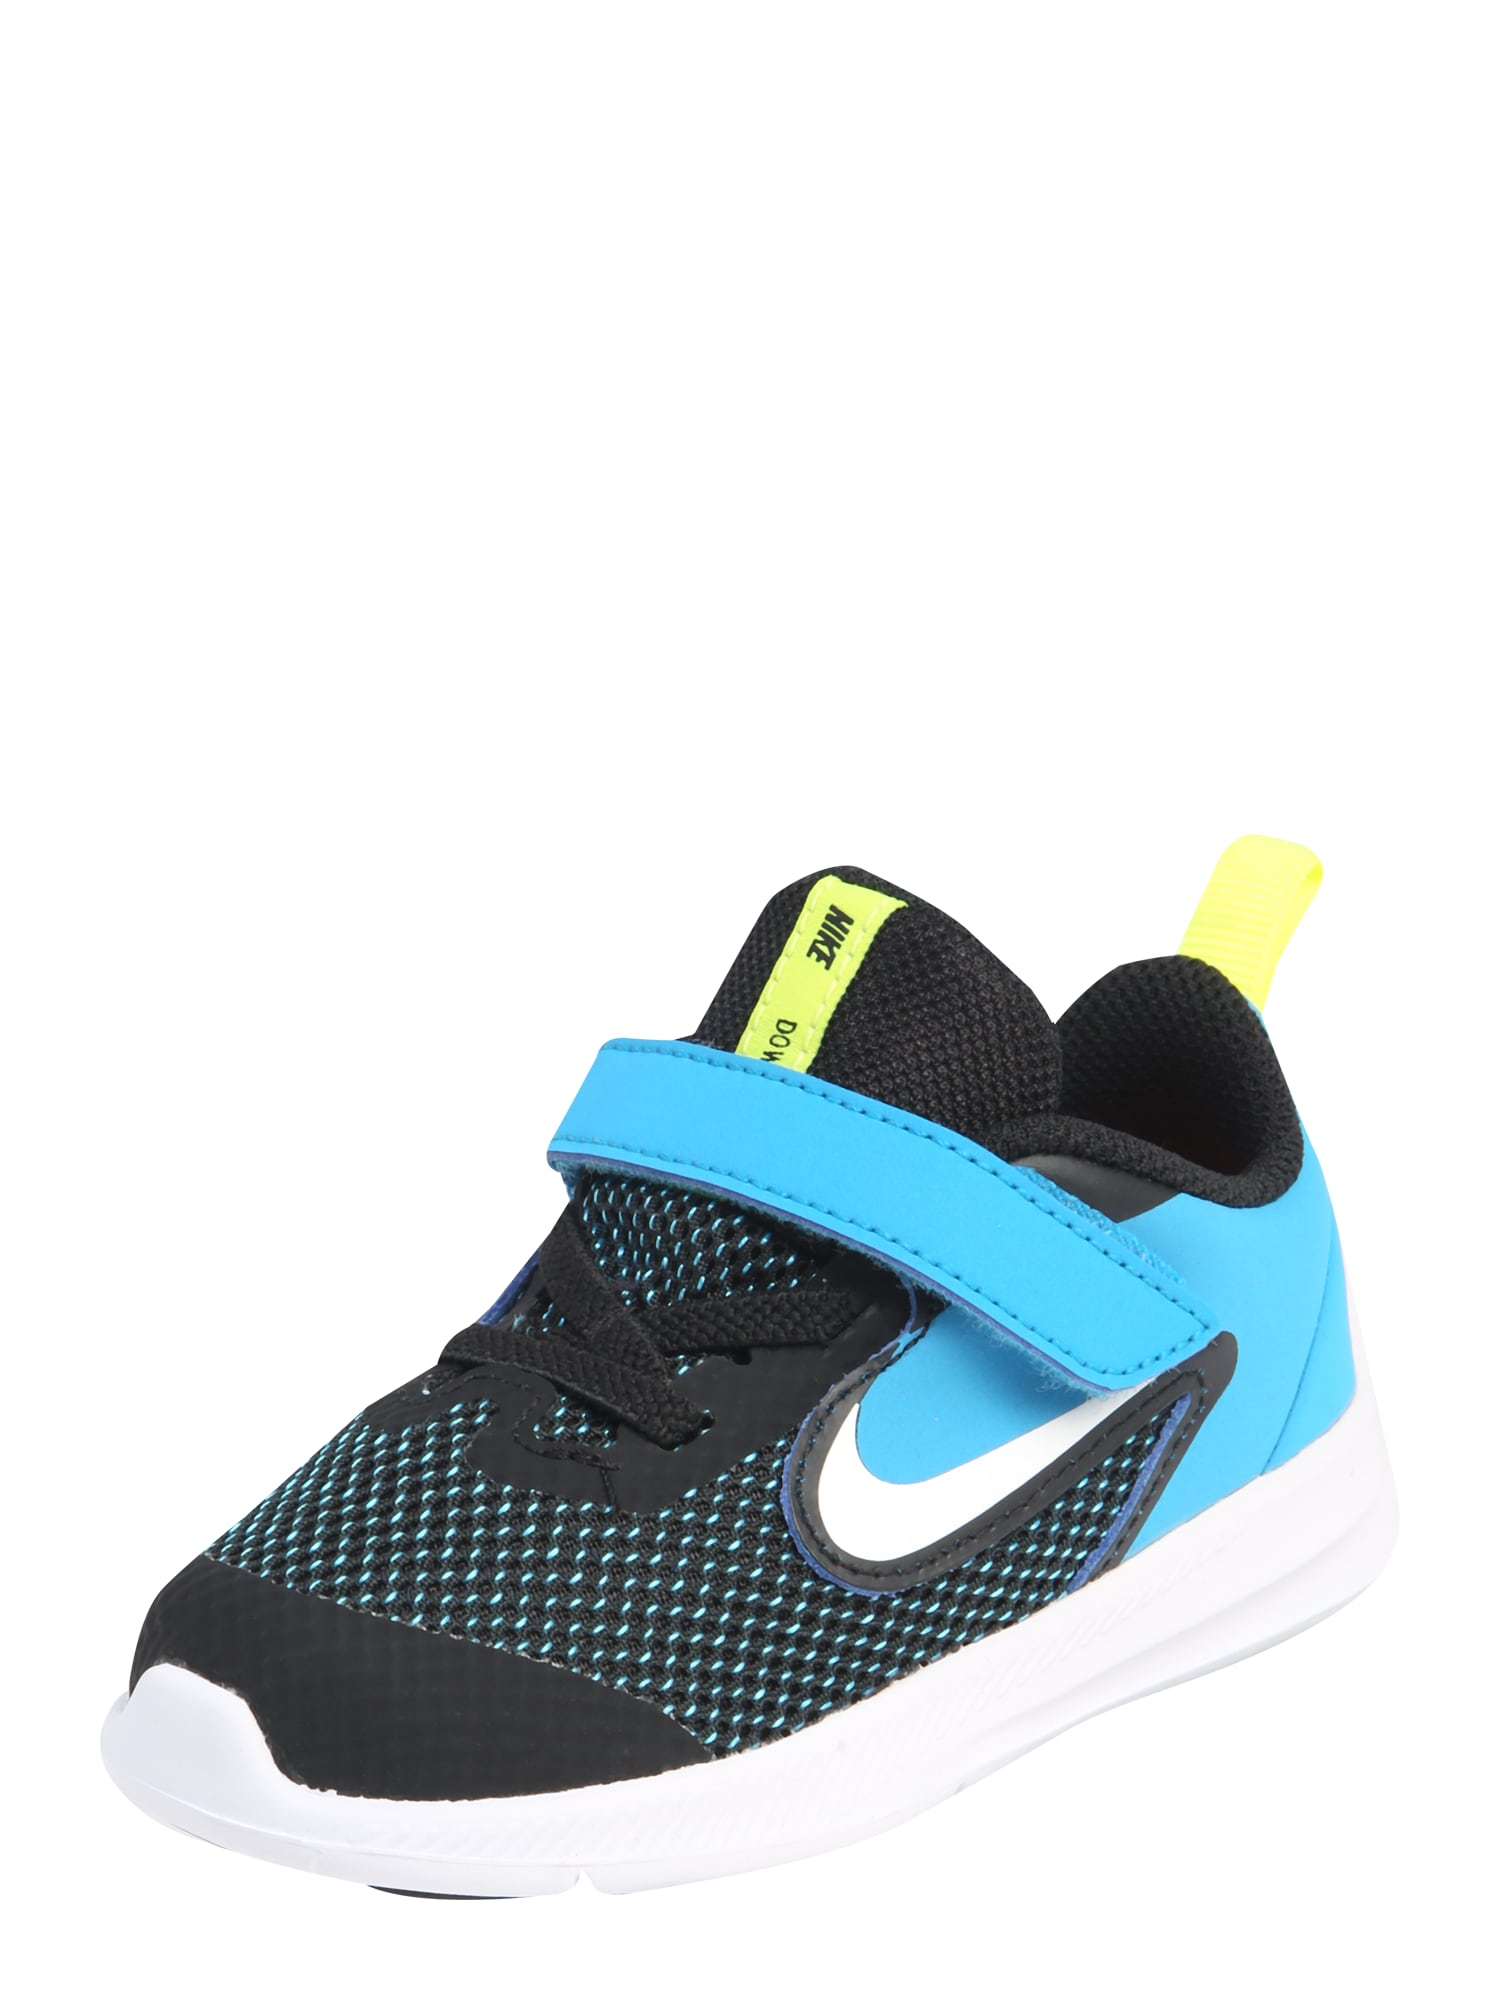 Babyschuhe - Sneaker 'DOWNSHIFTER' - Onlineshop ABOUT YOU